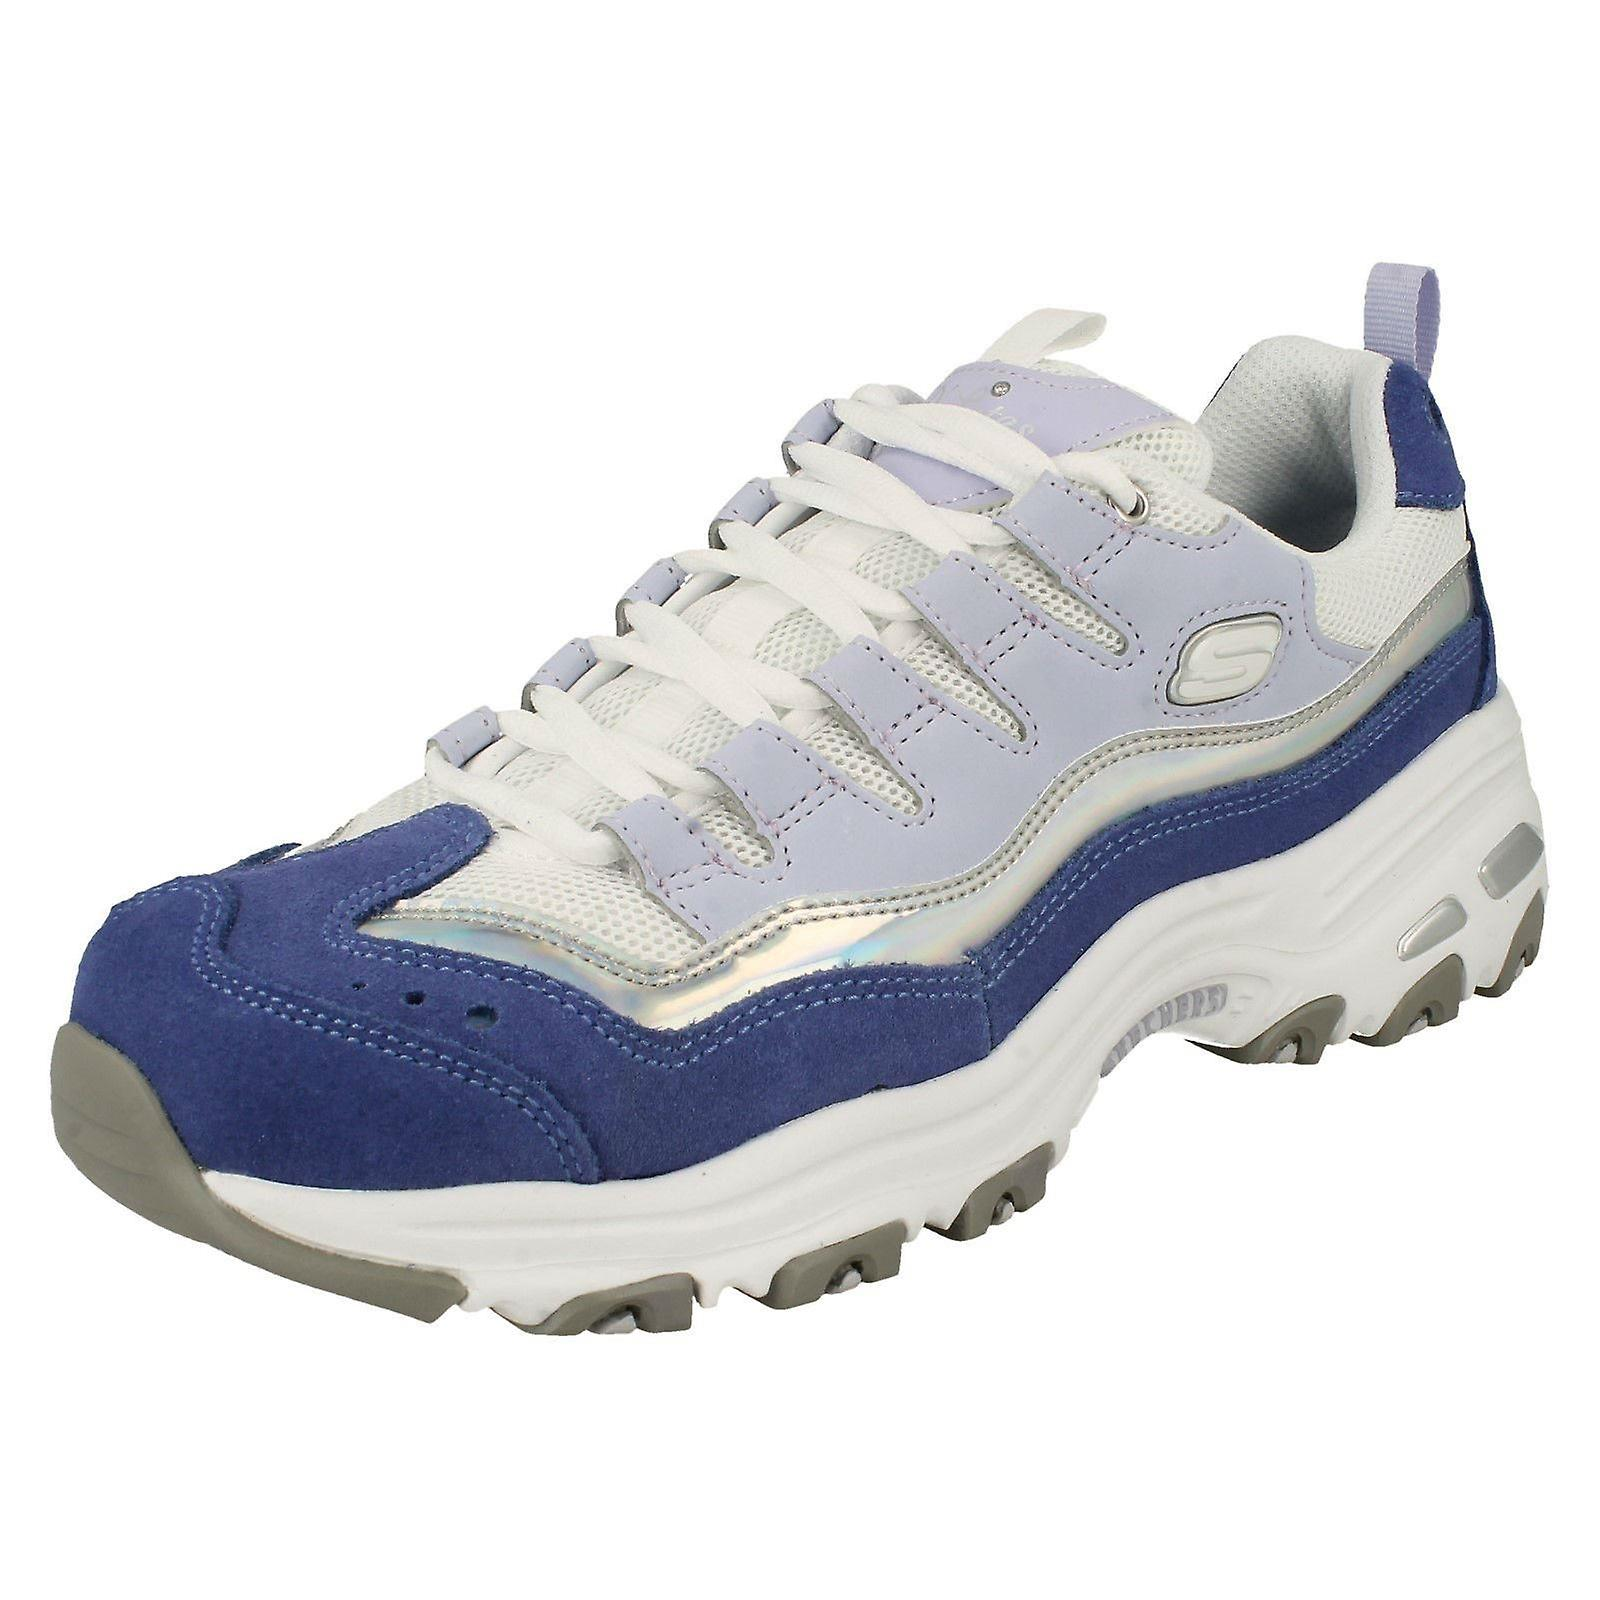 Ladies D'Lites By Skeches Air-Cooled Memory Foam Trainers Grand View zVCmB